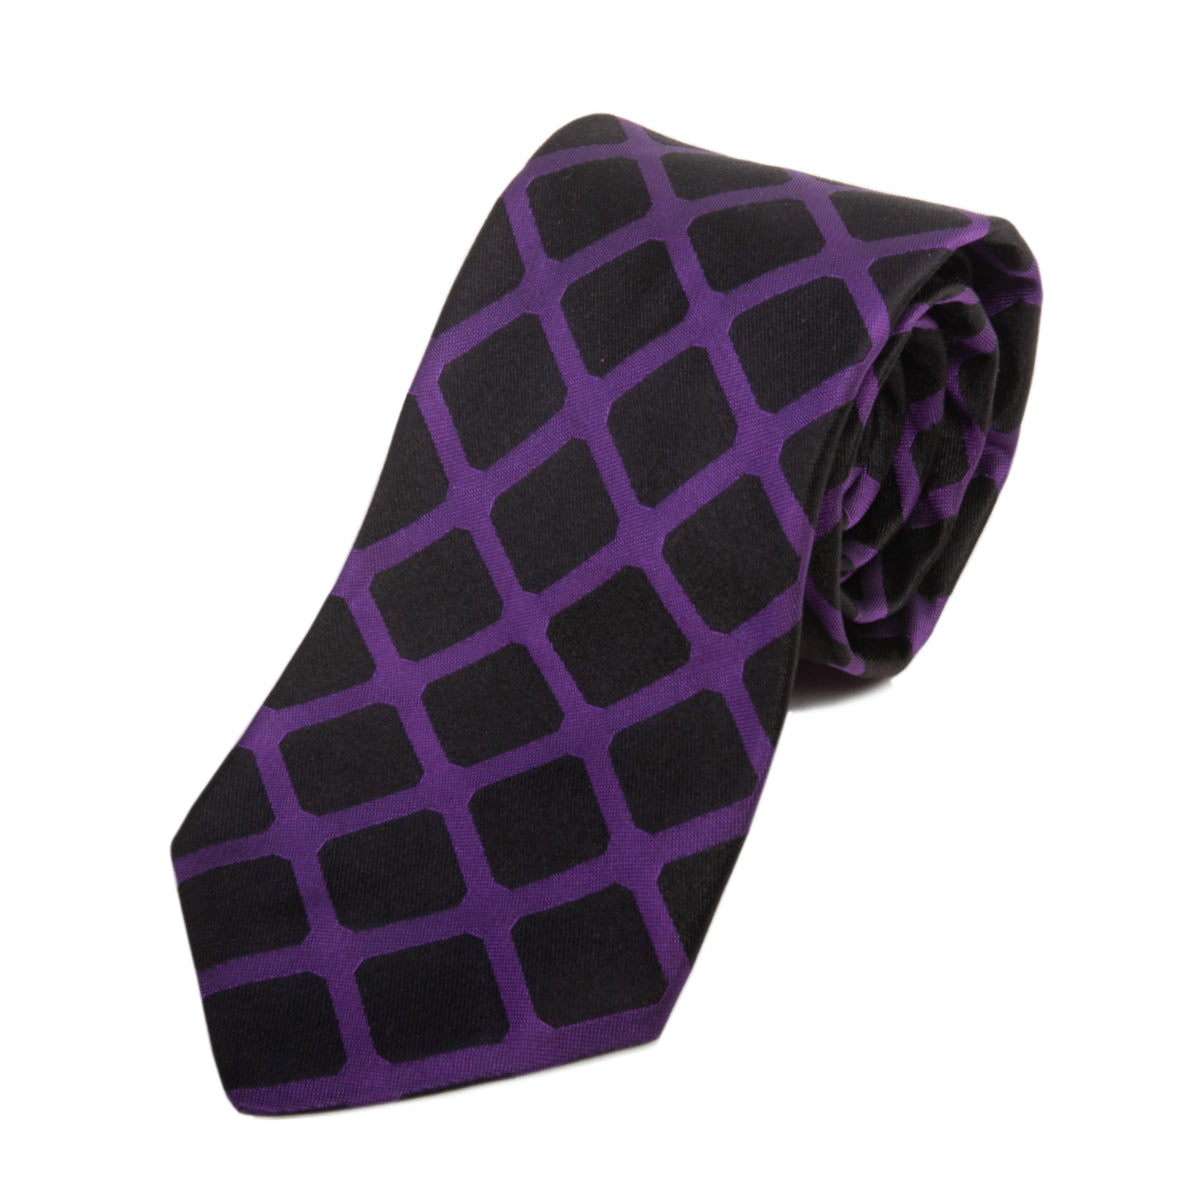 Ted Baker Purple on Black Check Silk Tie for Luxmrkt.com Menswear Consignment Edmonton